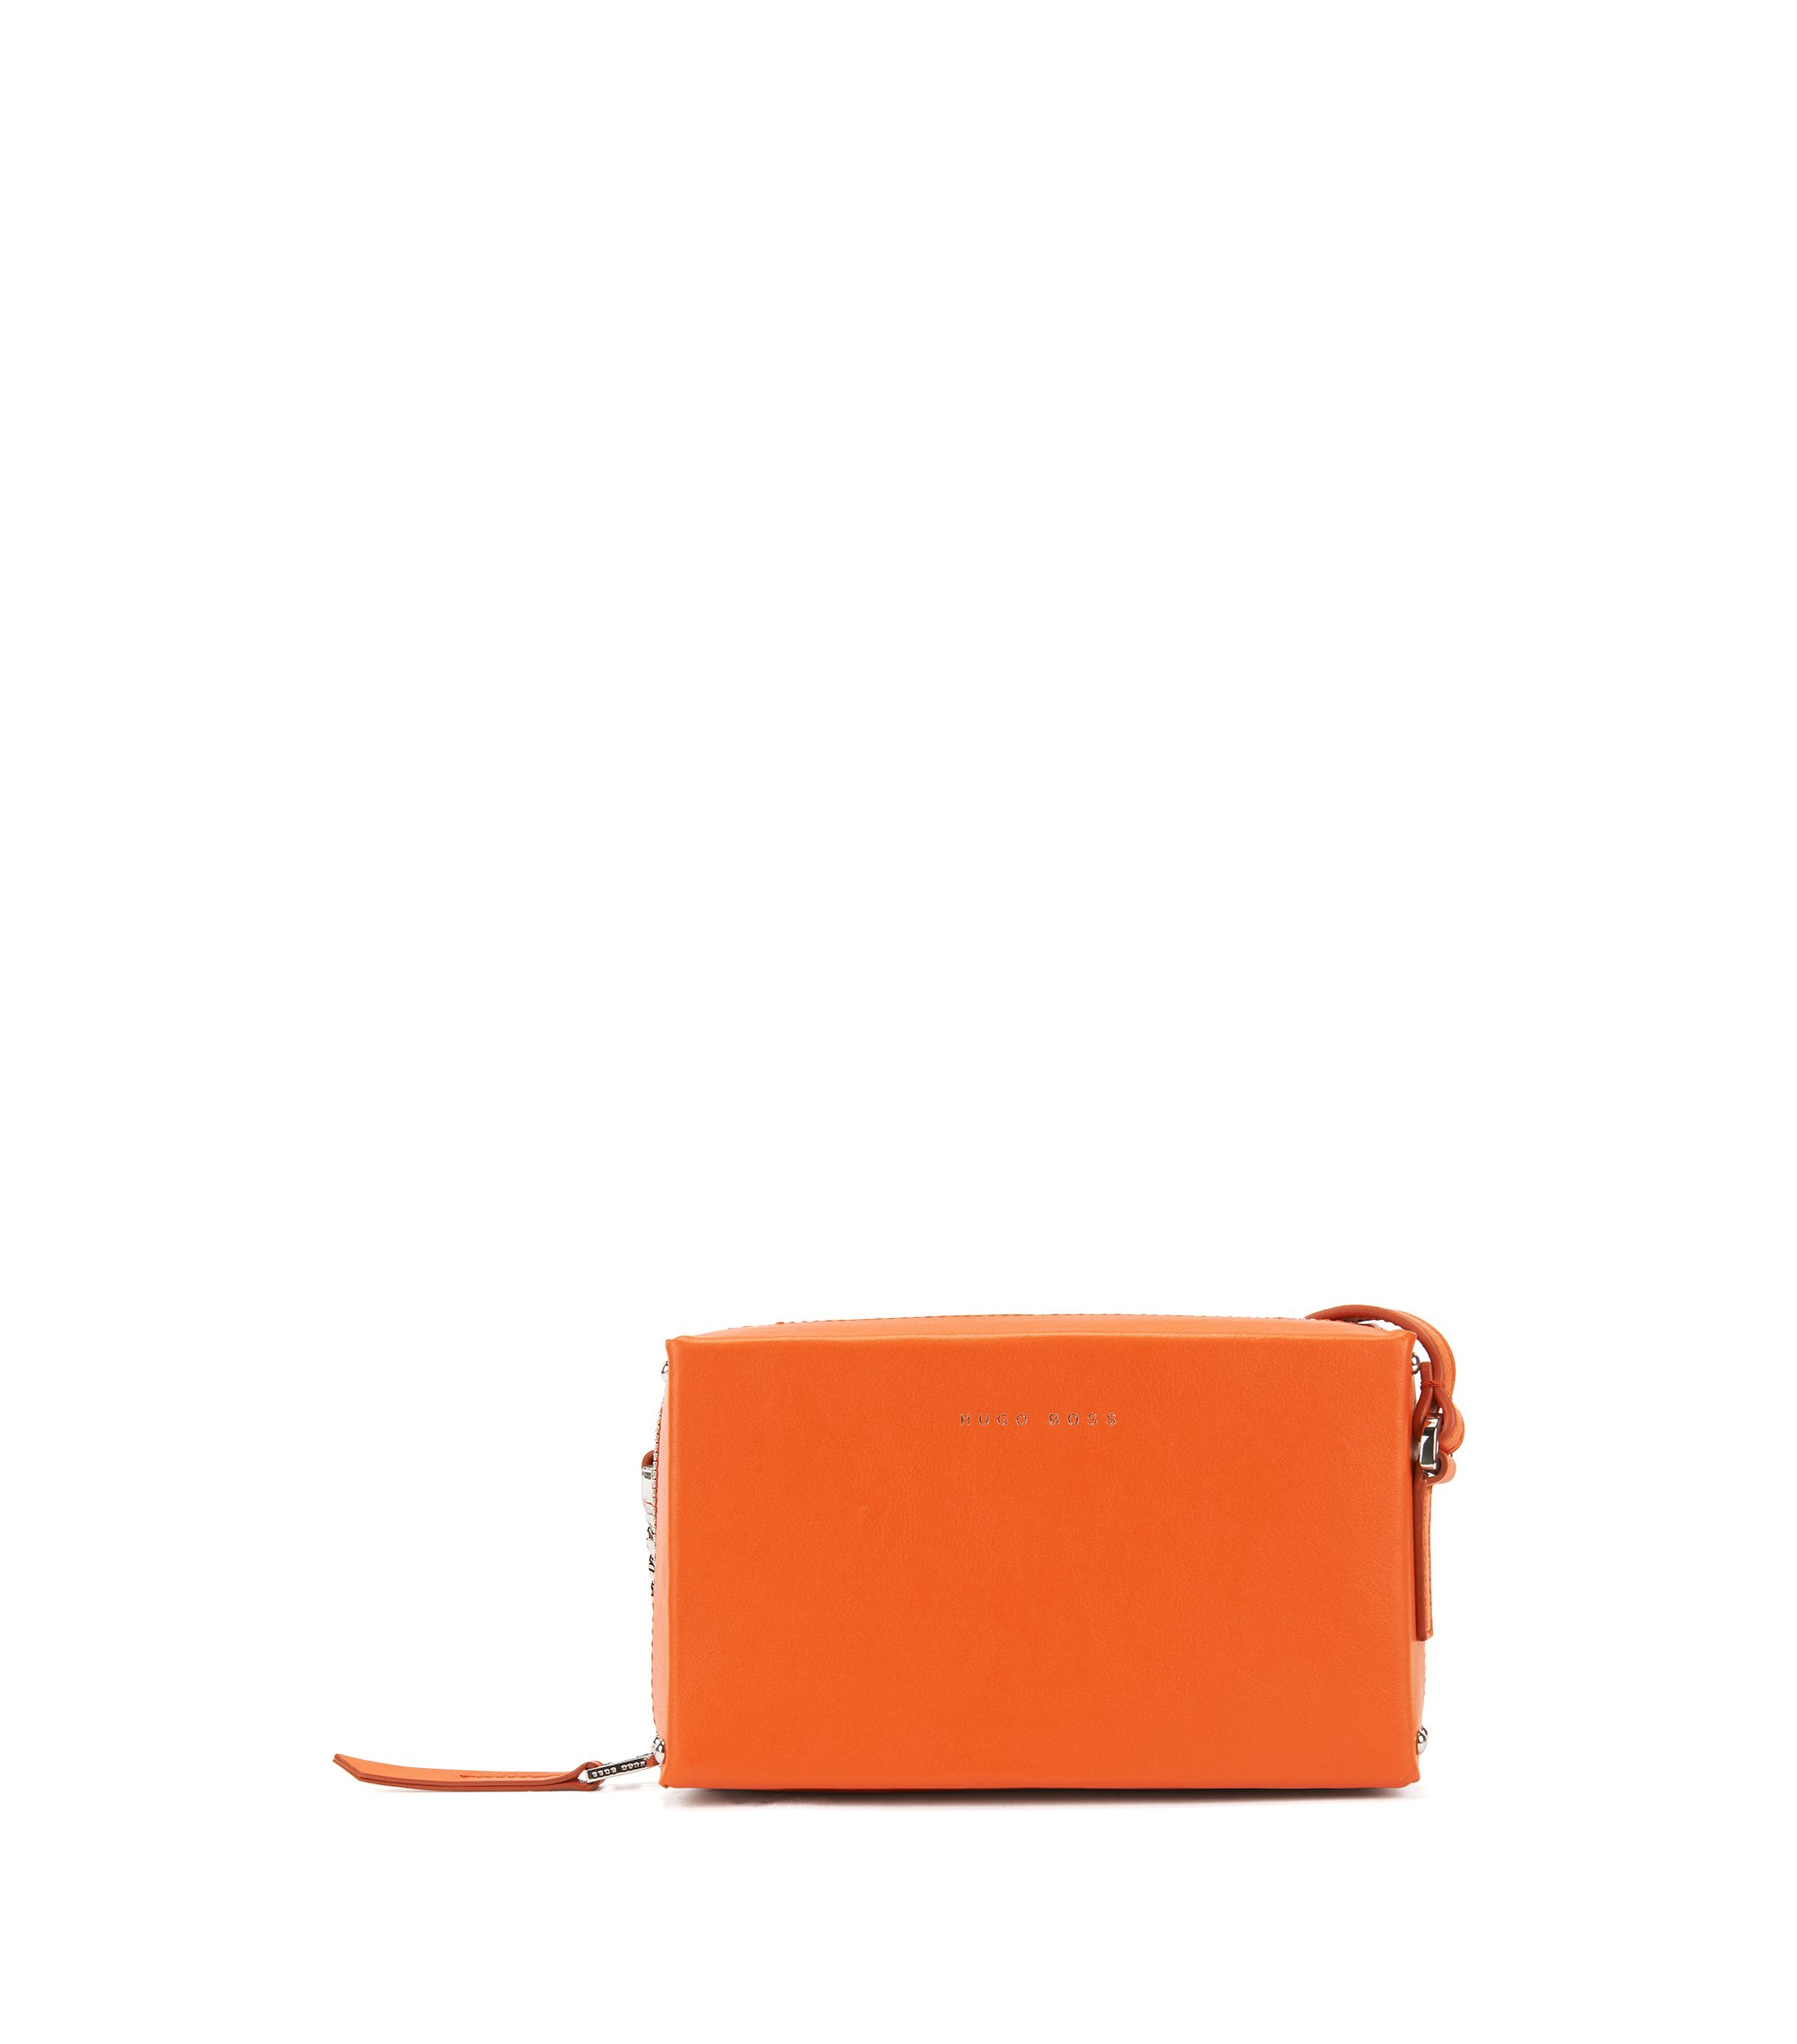 Italian-leather cross-body bag with chain strap, Orange